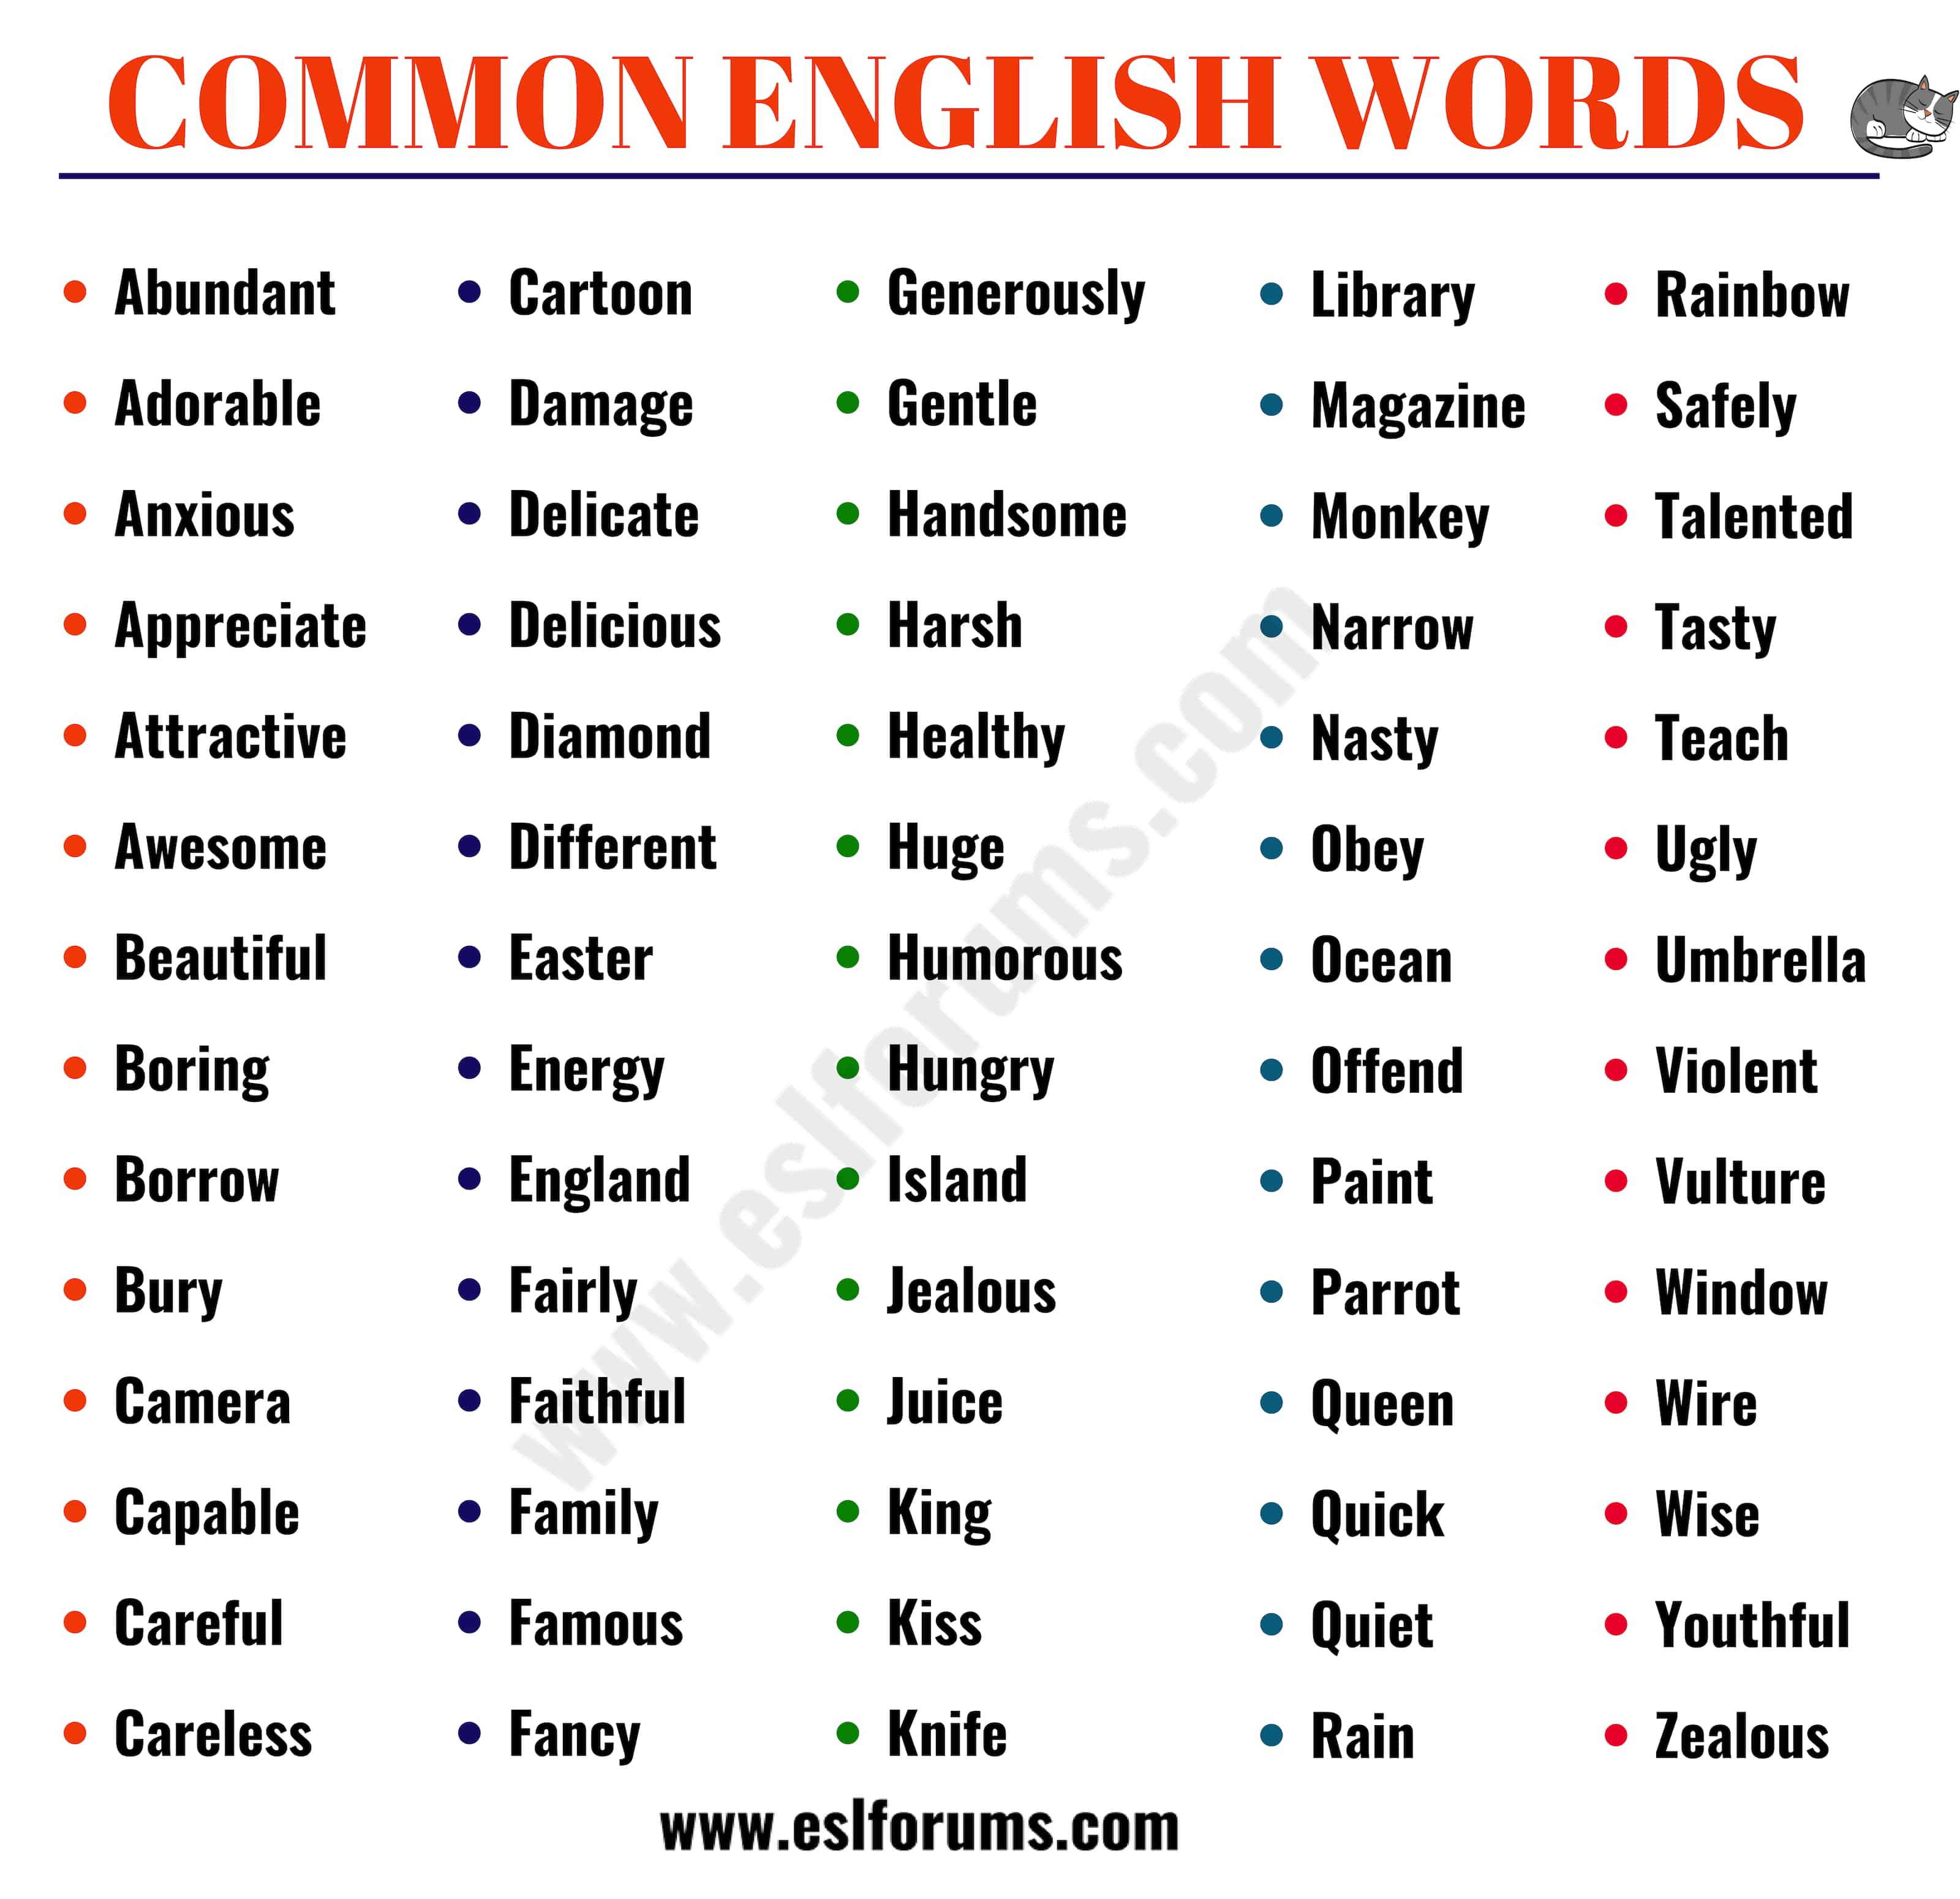 List of 700+ Most Common English Words Everyone Should Learn! - ESL